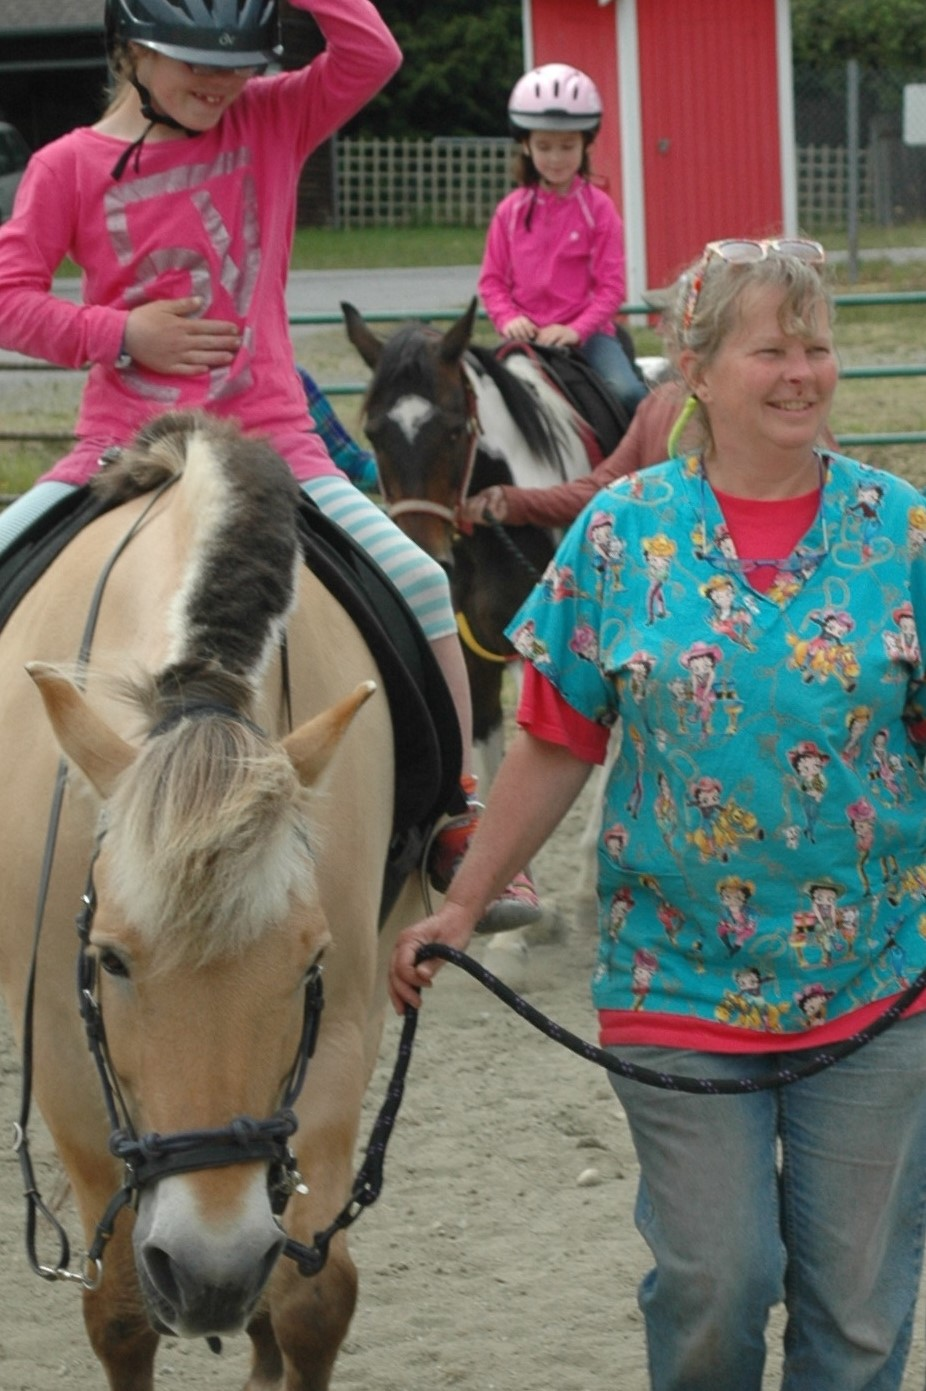 Donna is our Treasurer and brings her horse Dixie with her to the program.